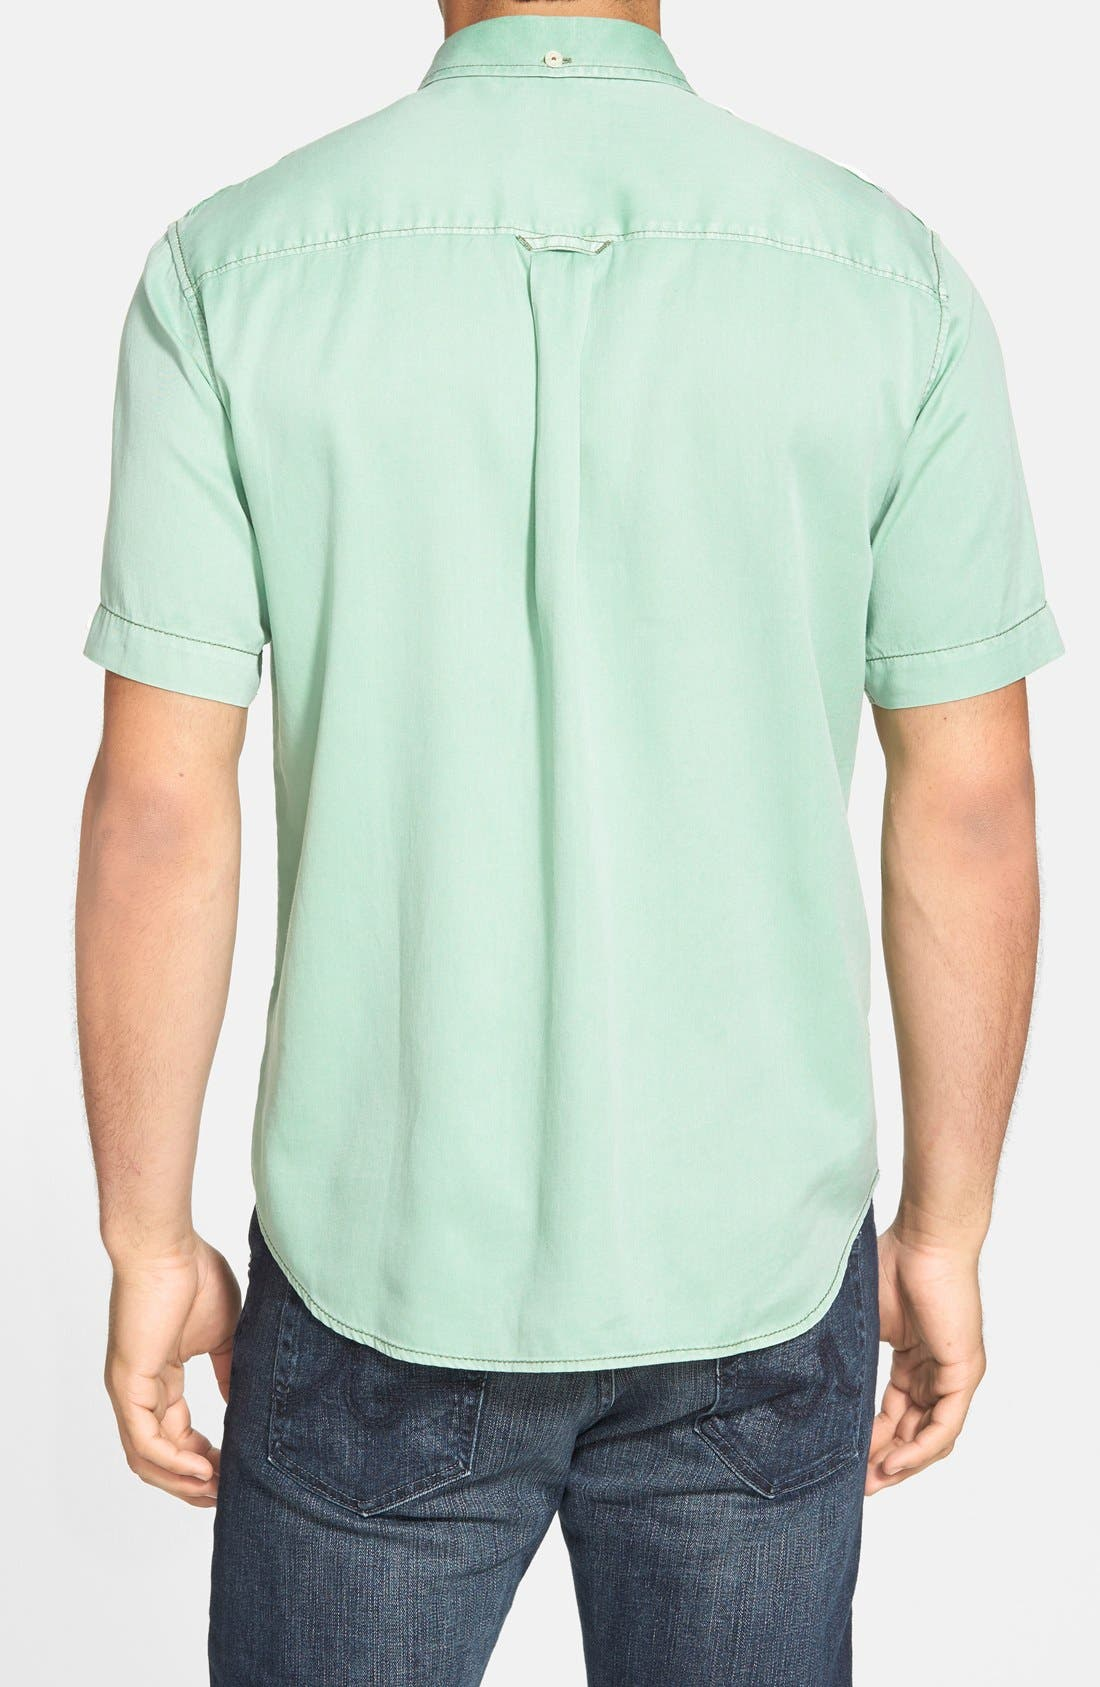 'New Twilly' Island Modern Fit Short Sleeve Twill Shirt,                             Alternate thumbnail 34, color,